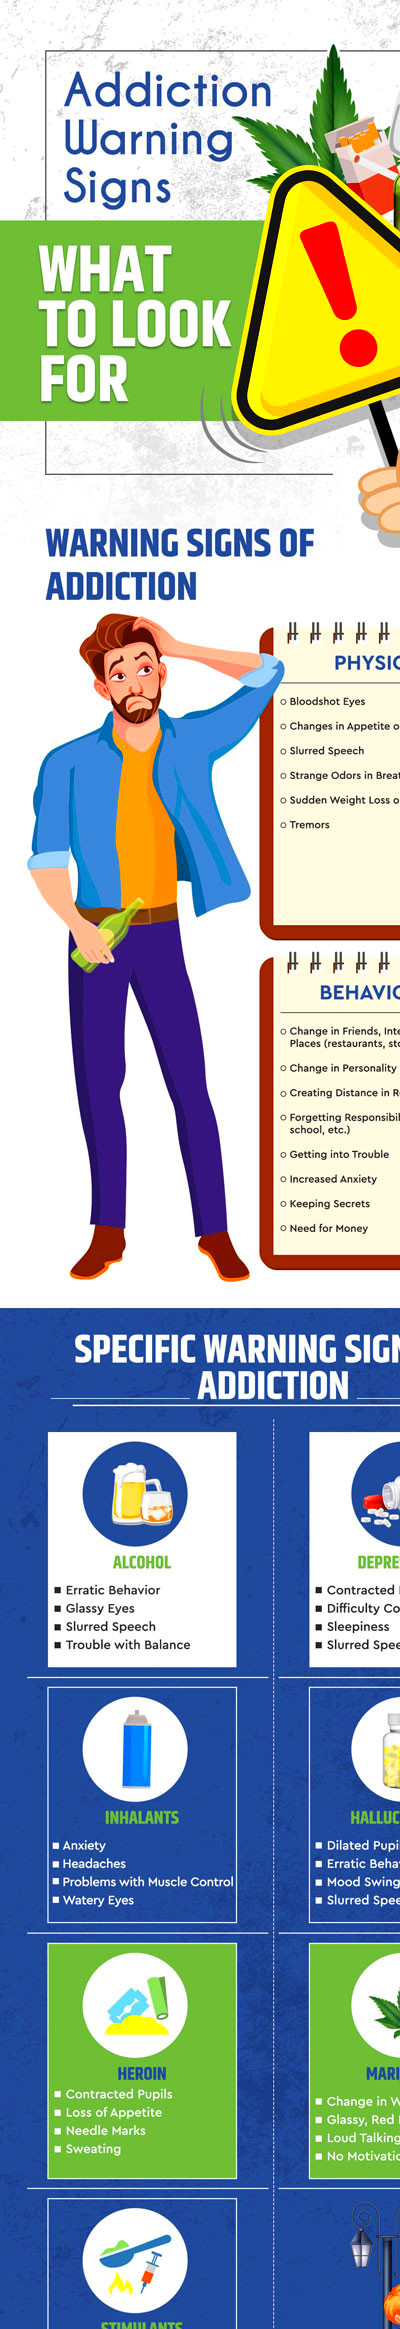 Addiction Warning Signs: What to Look For - Best Infographics